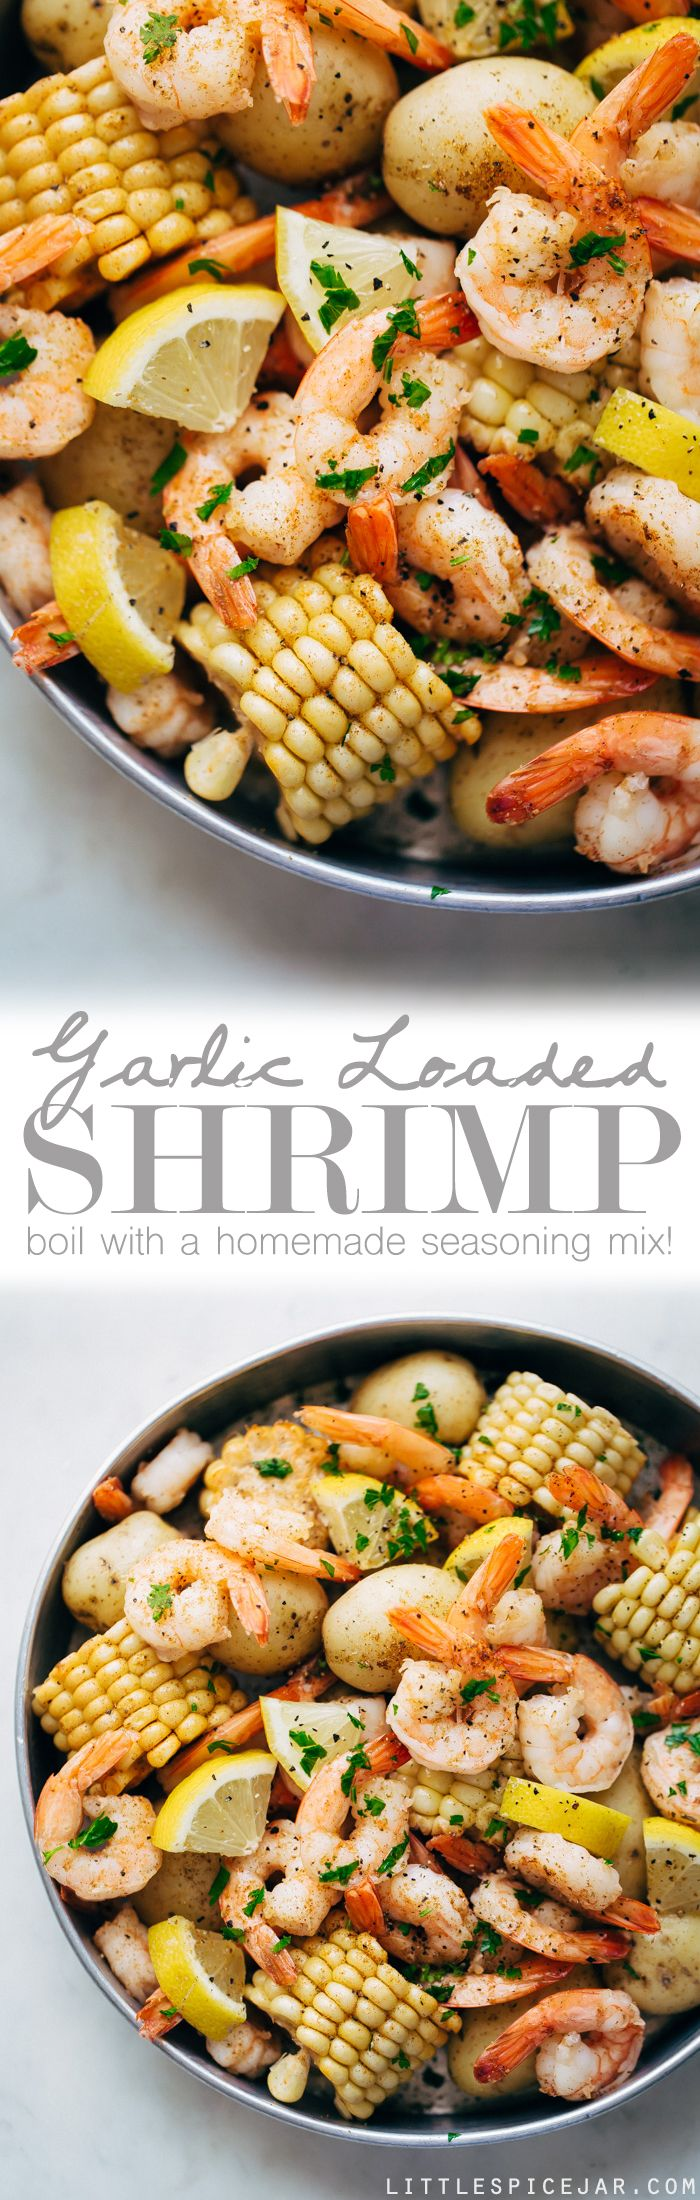 Garlic Loaded Southern Shrimp Boil - This is a 30 minute recipe for a homemade shrimp boil with homemade boil seasoning! #shrimpboil #homemadeoldbayseasoning #shrimp #boil #seafoodboil #crawfishboil | LIttlespicejar.com